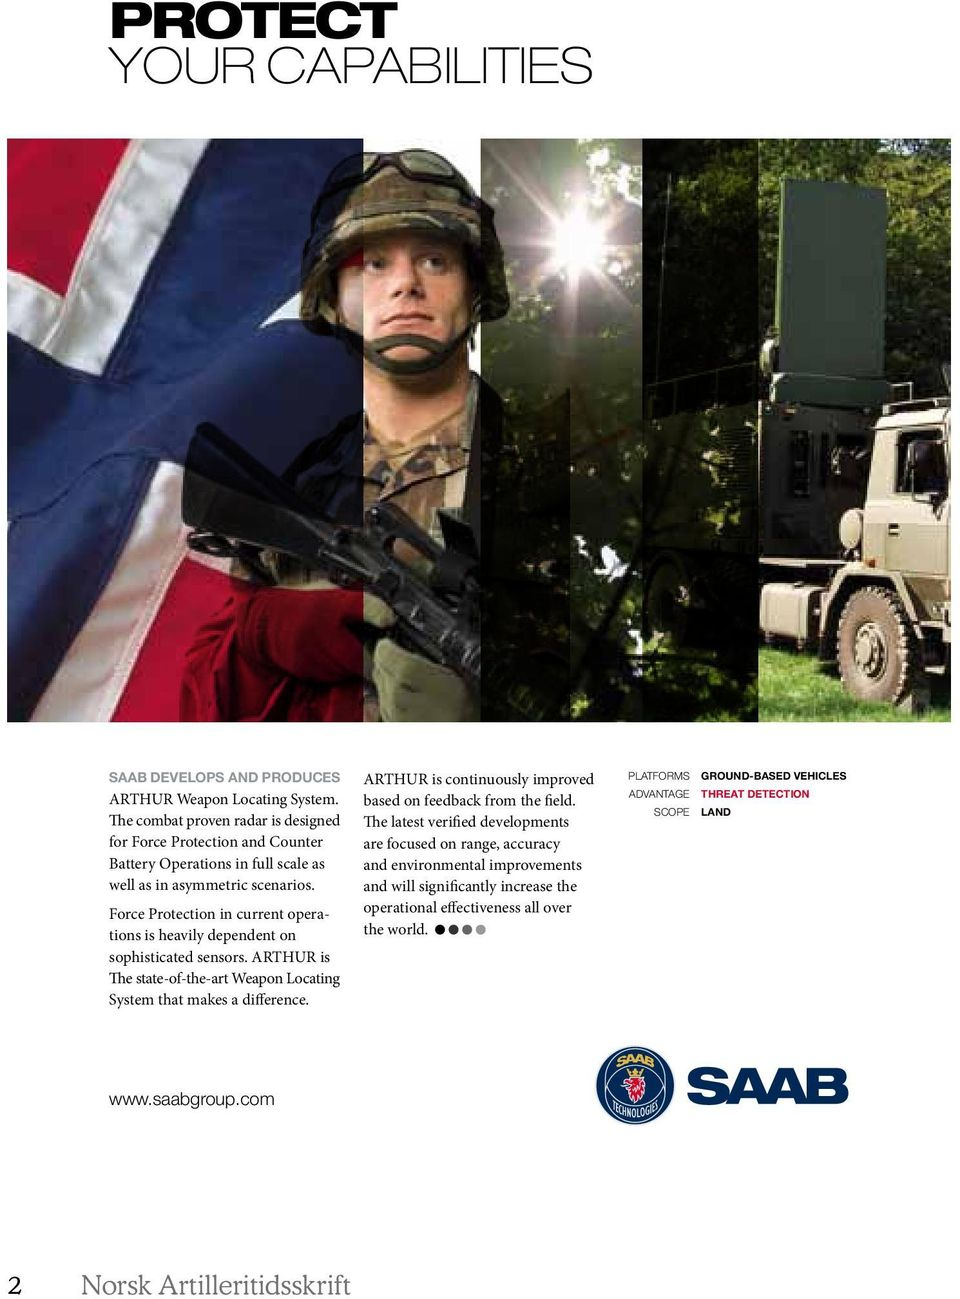 Force Protection in current operations is heavily dependent on sophisticated sensors. ARTHUR is The state-of-the-art Weapon Locating System that makes a difference.